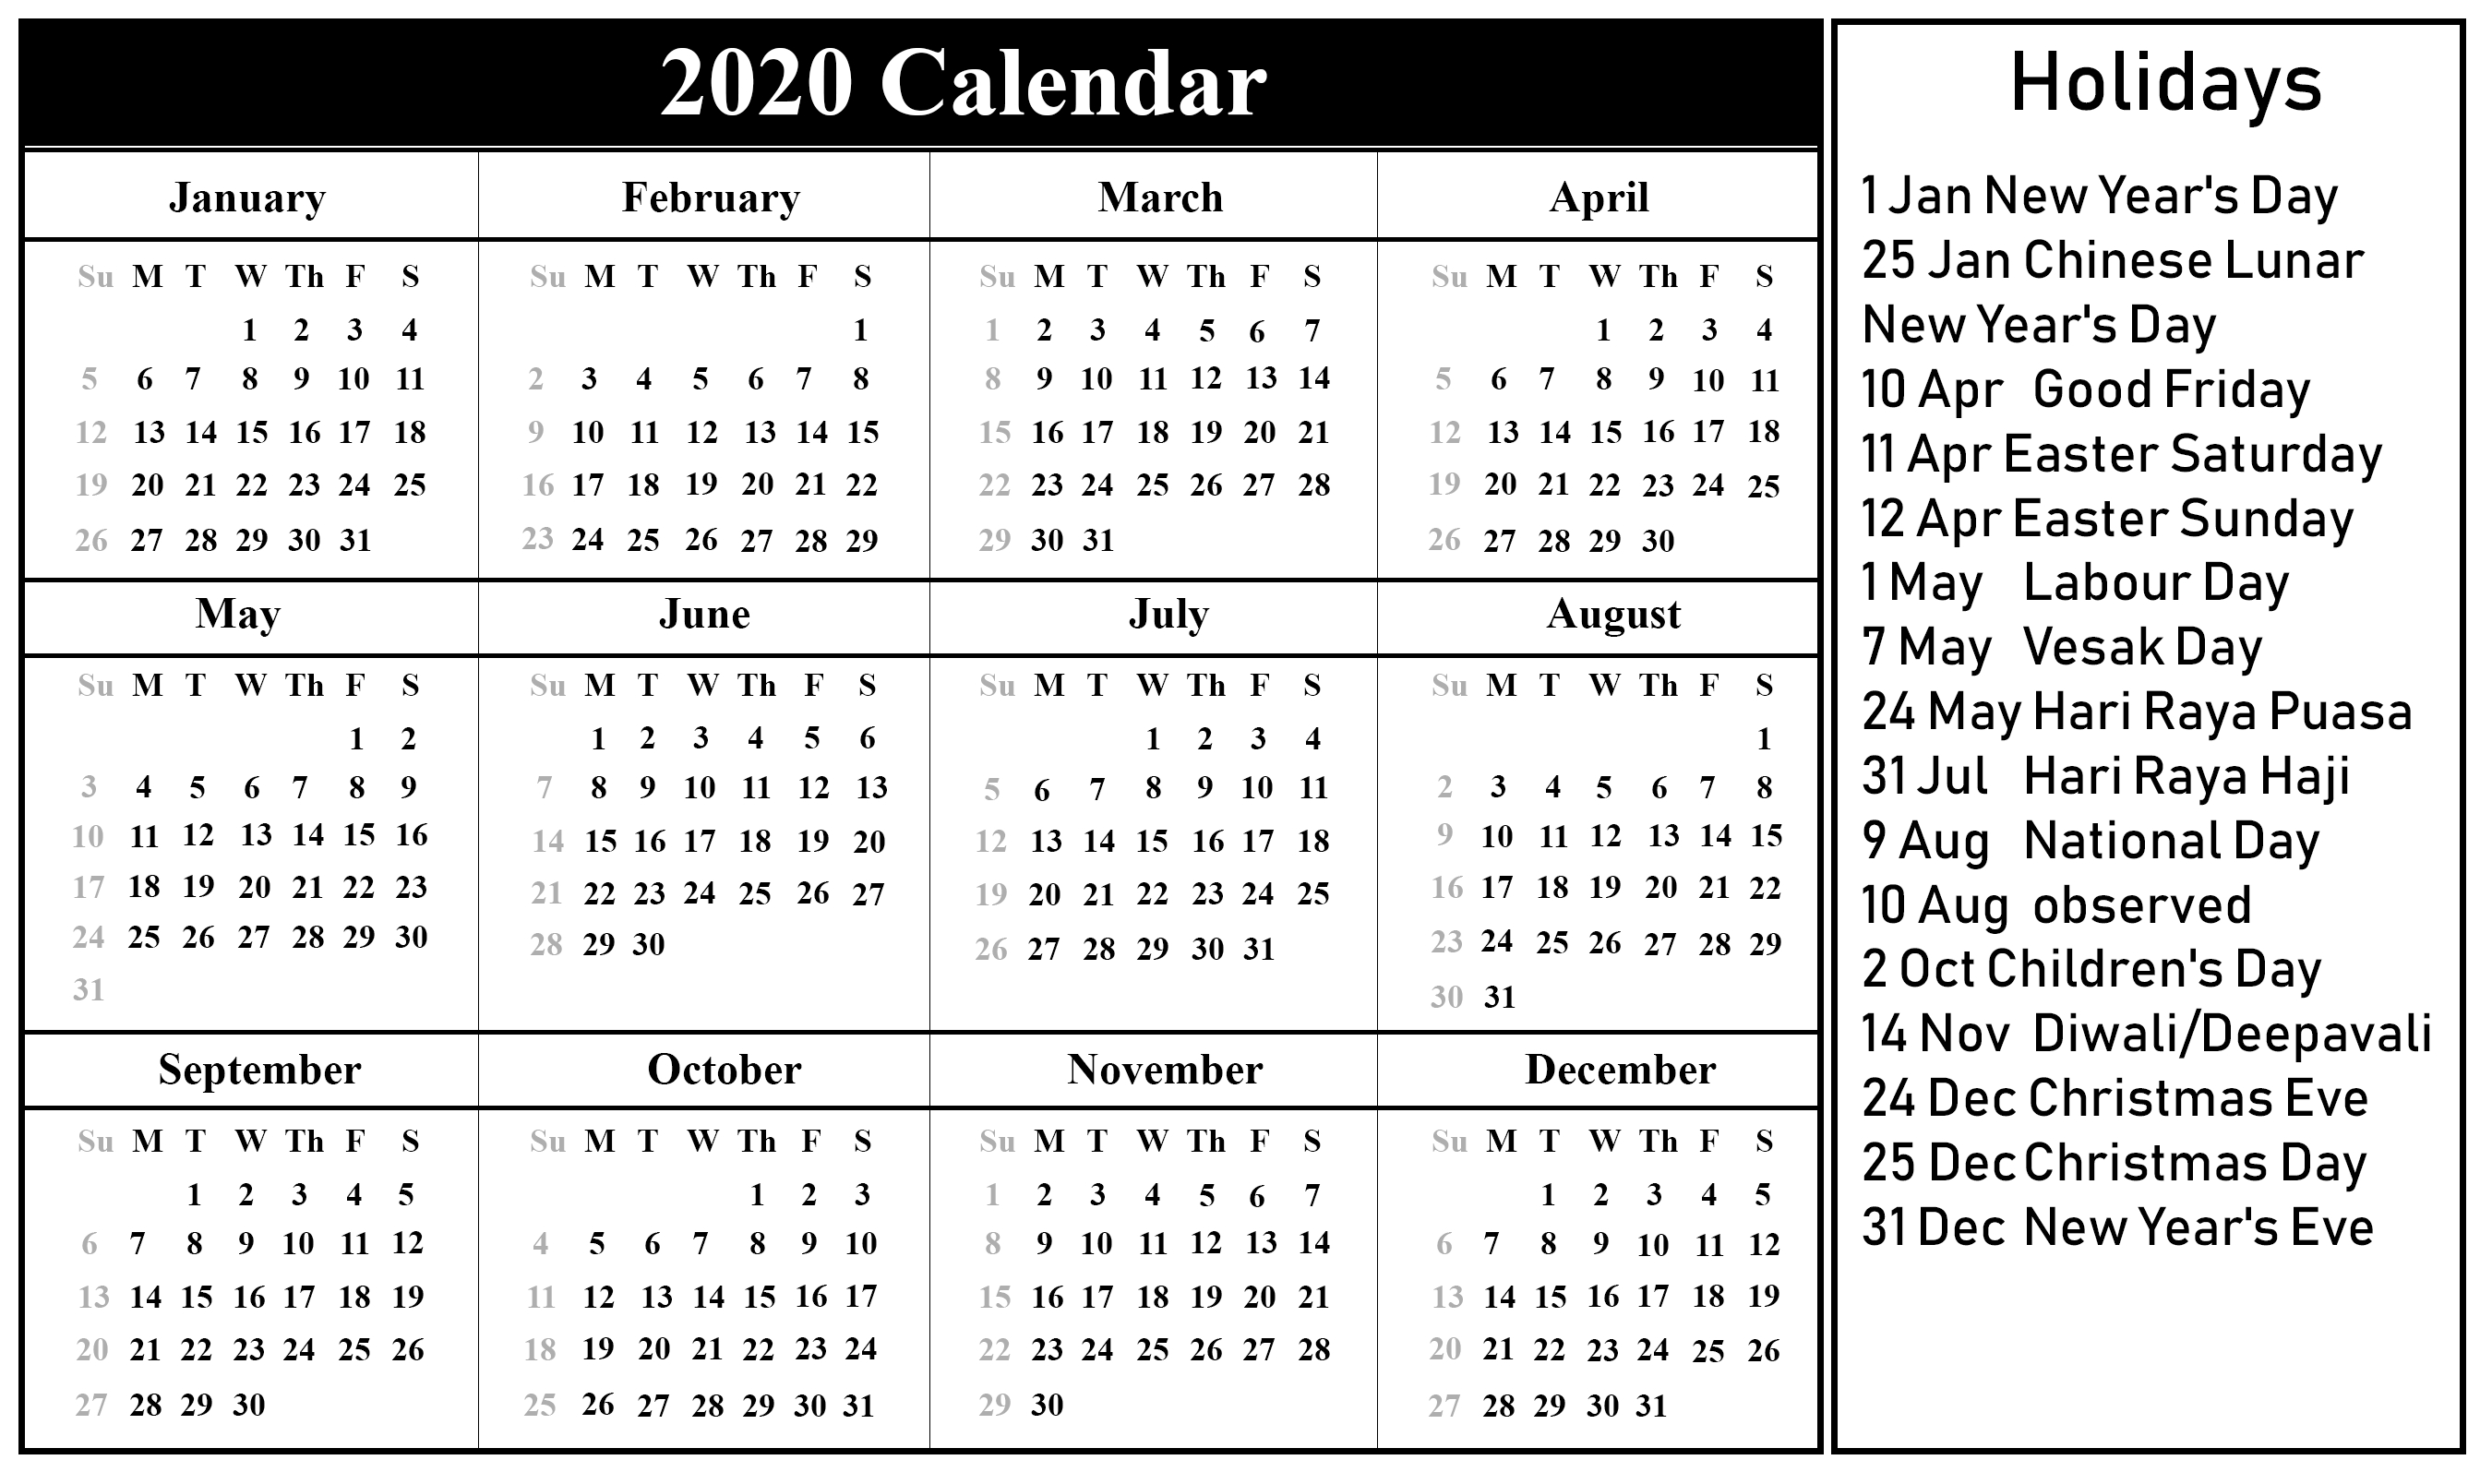 Printable 2020 Calendar With Holidays | Monthly Calendar-Printable 2020 Calendar Showing Holidays